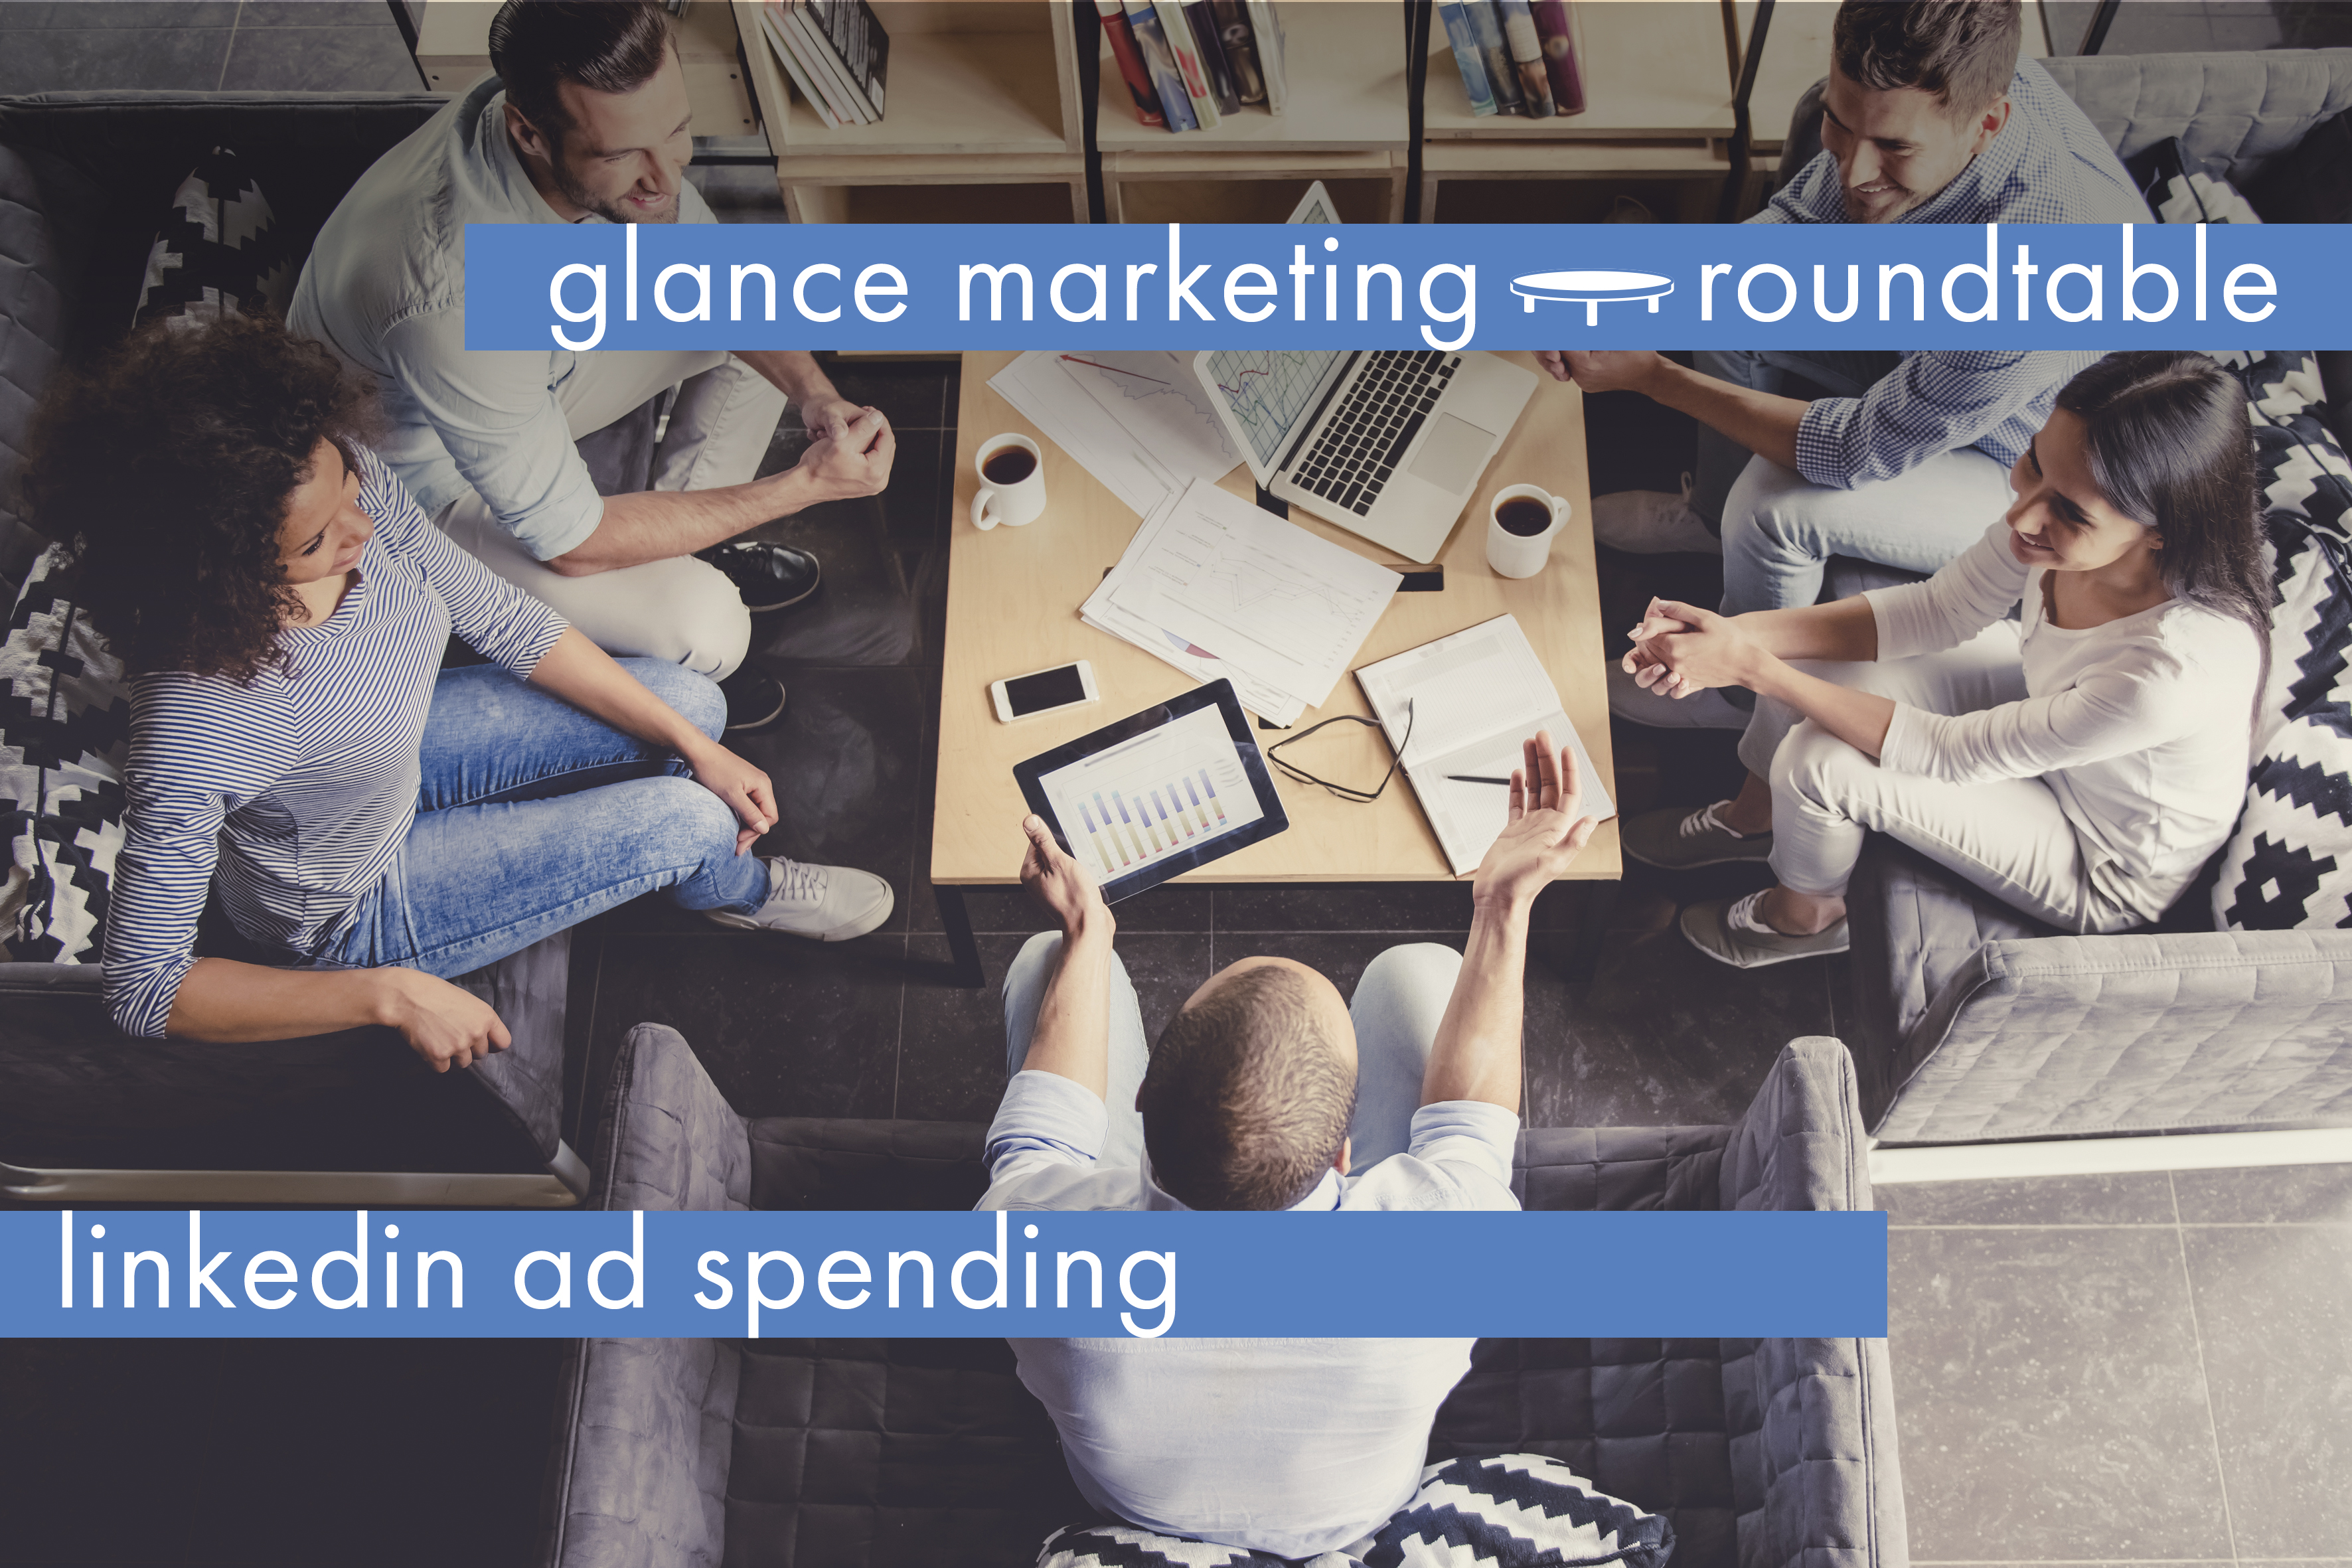 Is 2019 the year to increase your LinkedIn ad spending? Glance Roundtable